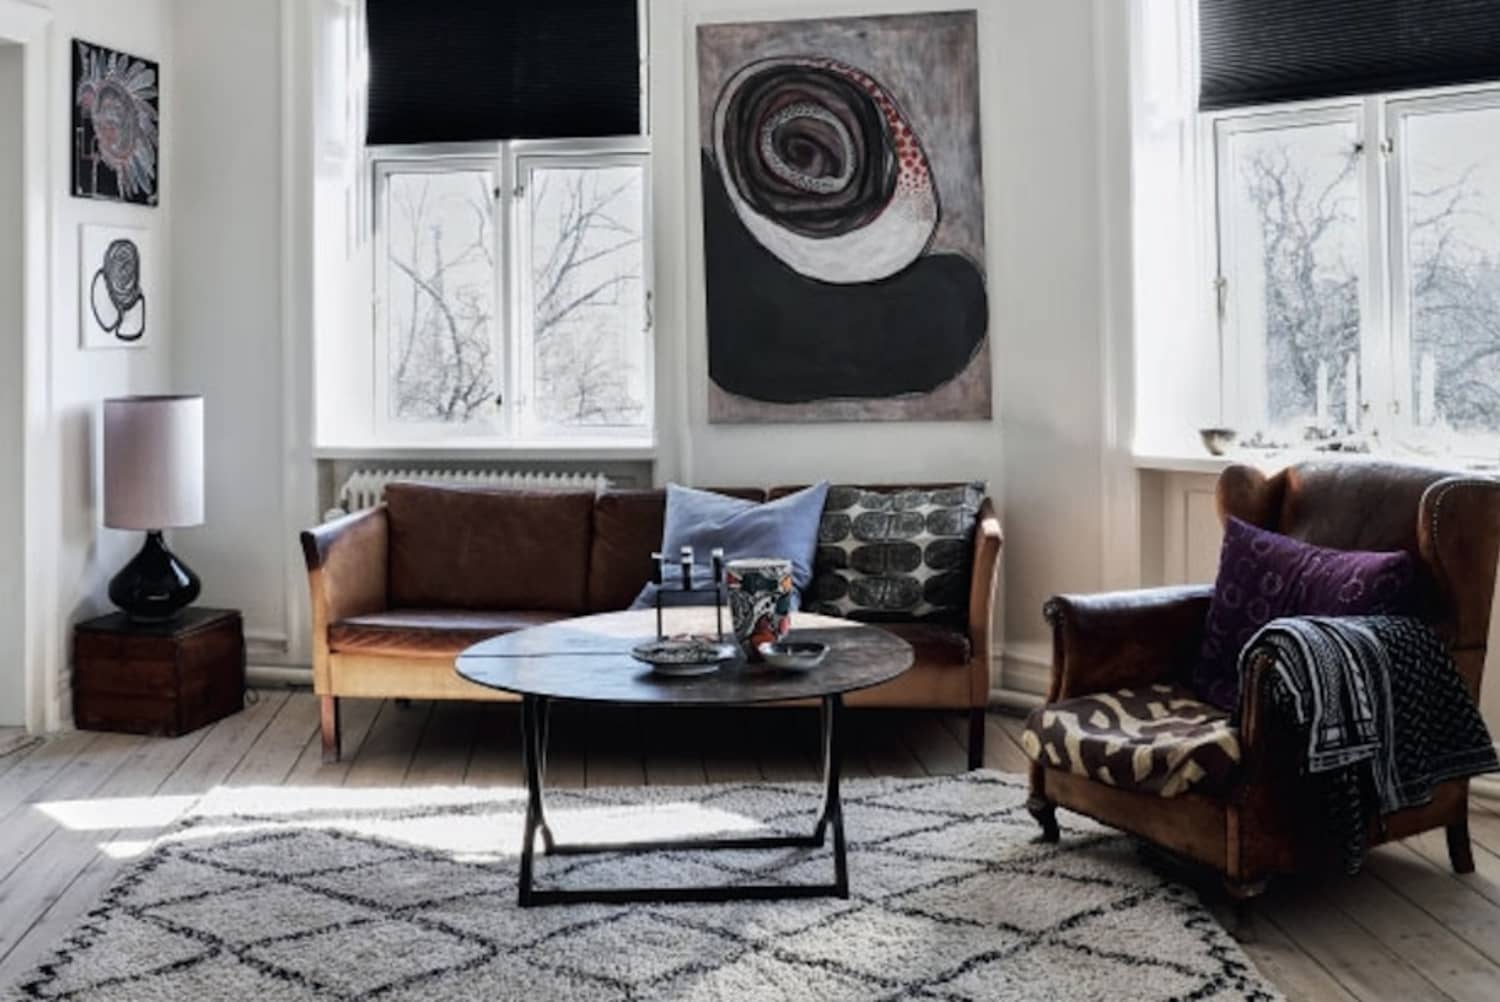 We Can't Get Enough: A Big Gallery of Beautiful Scandinavian Style Living Rooms